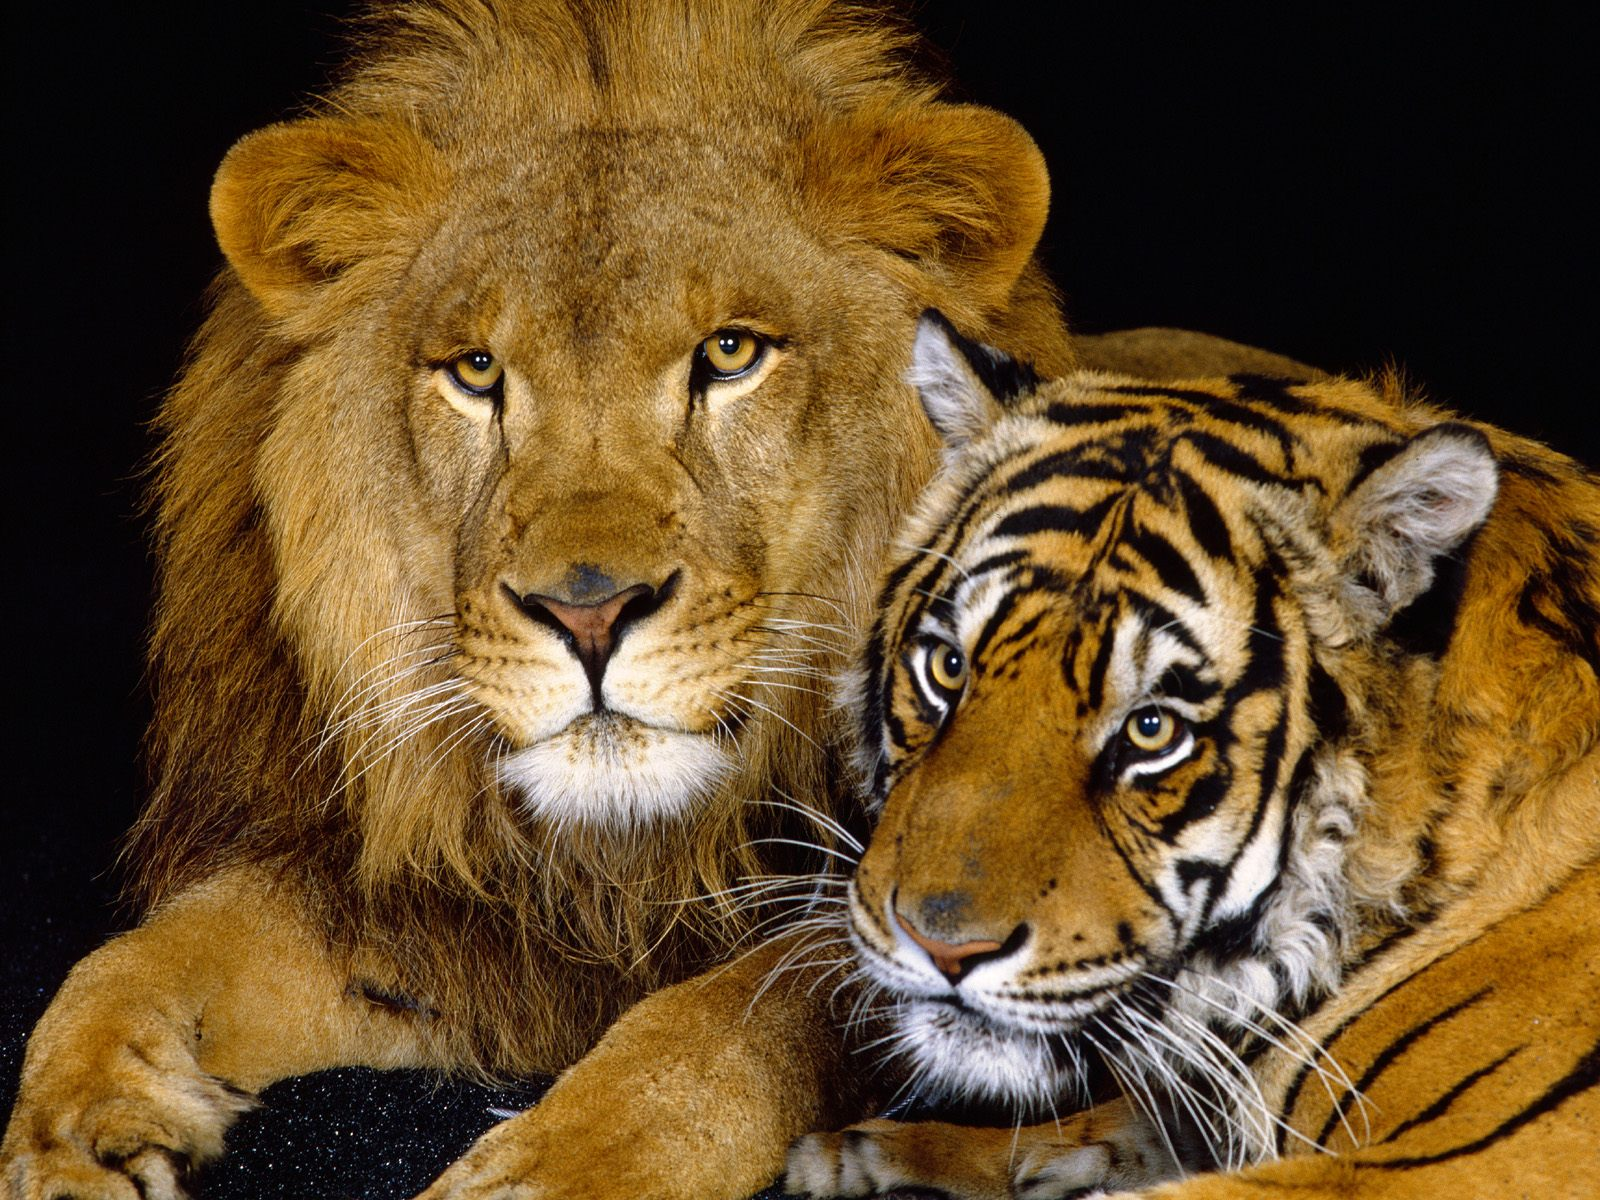 Lion and Tiger